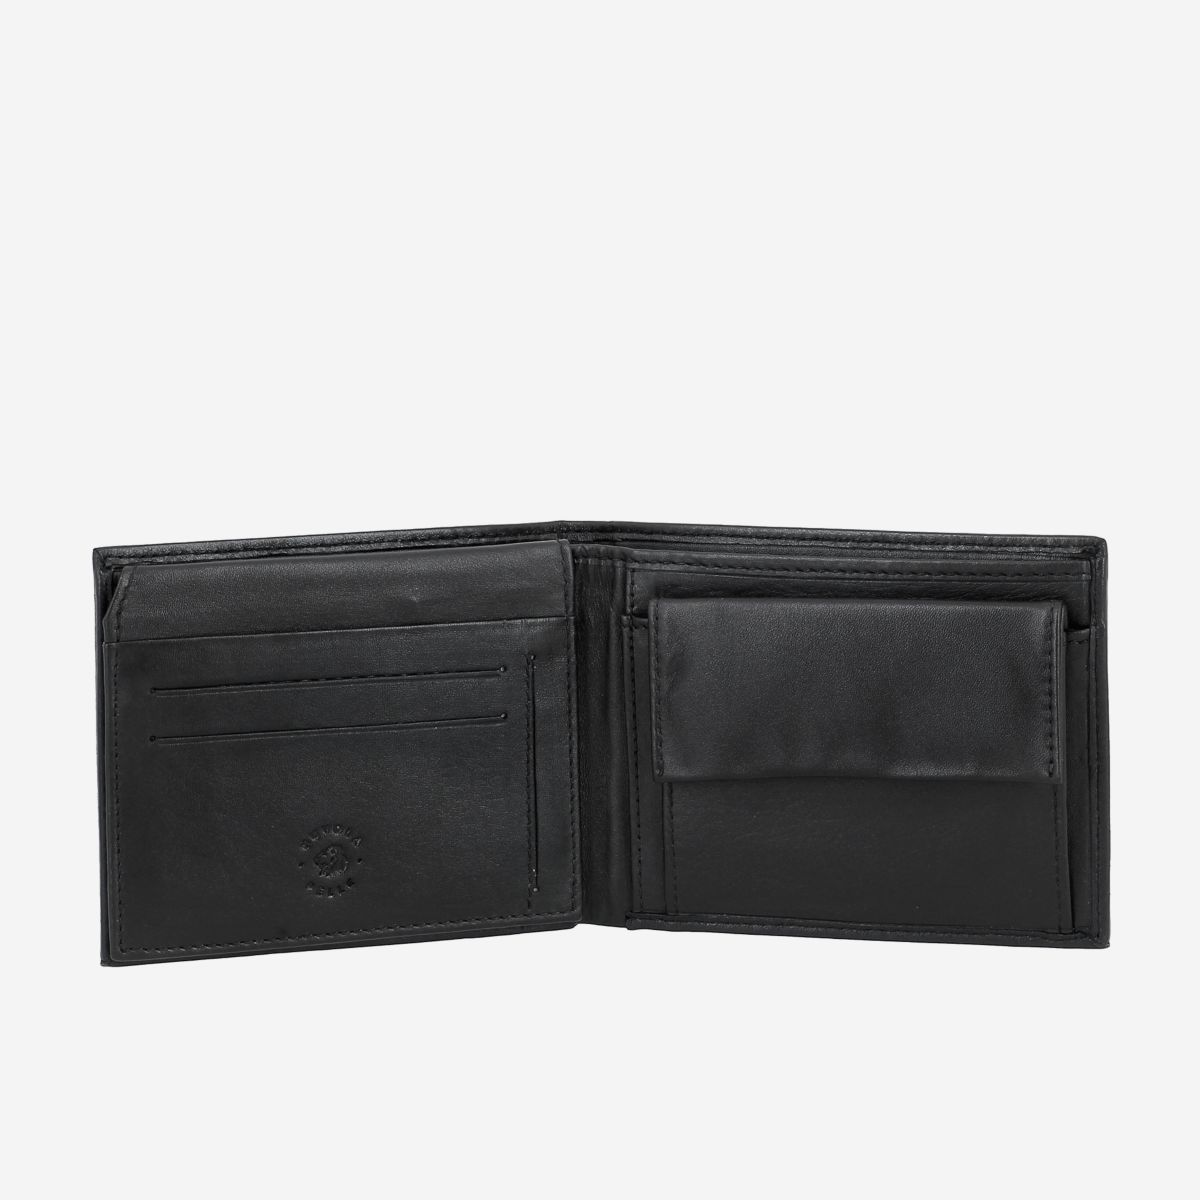 NUVOLA PELLE Elegant Mens Leather Wallet With Coin Coin Purse - Black